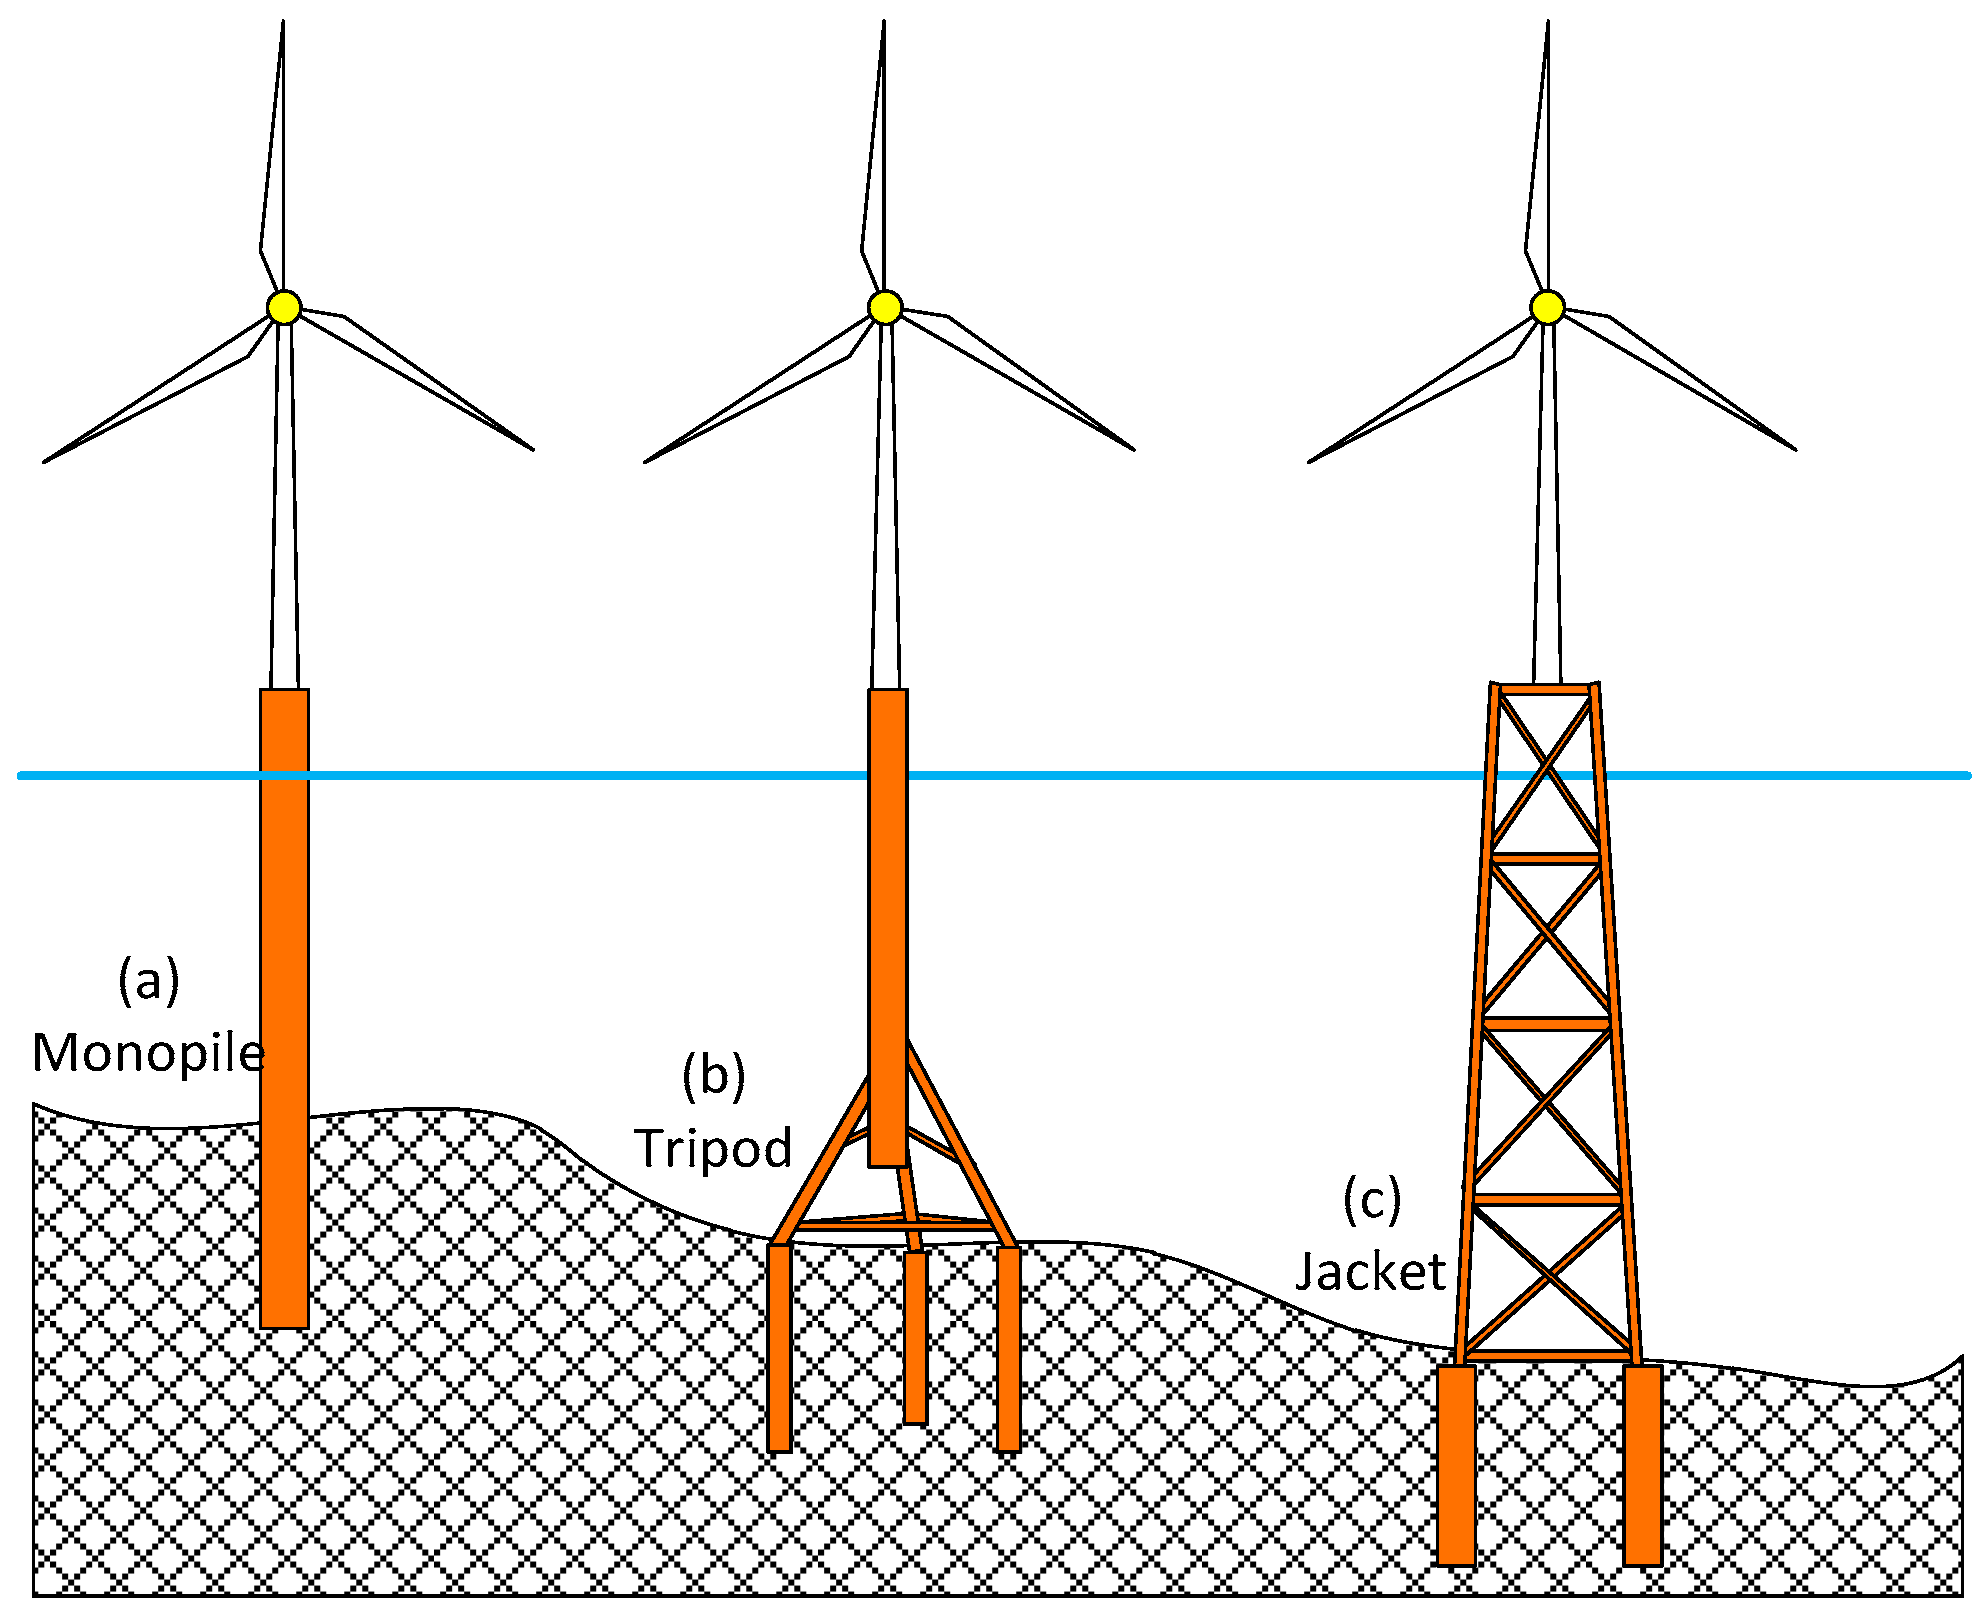 Jmse Free Full Text Tripod Supported Offshore Wind Turbines Modal And Coupled Analysis And A Parametric Study Using X Sea And Fast Html